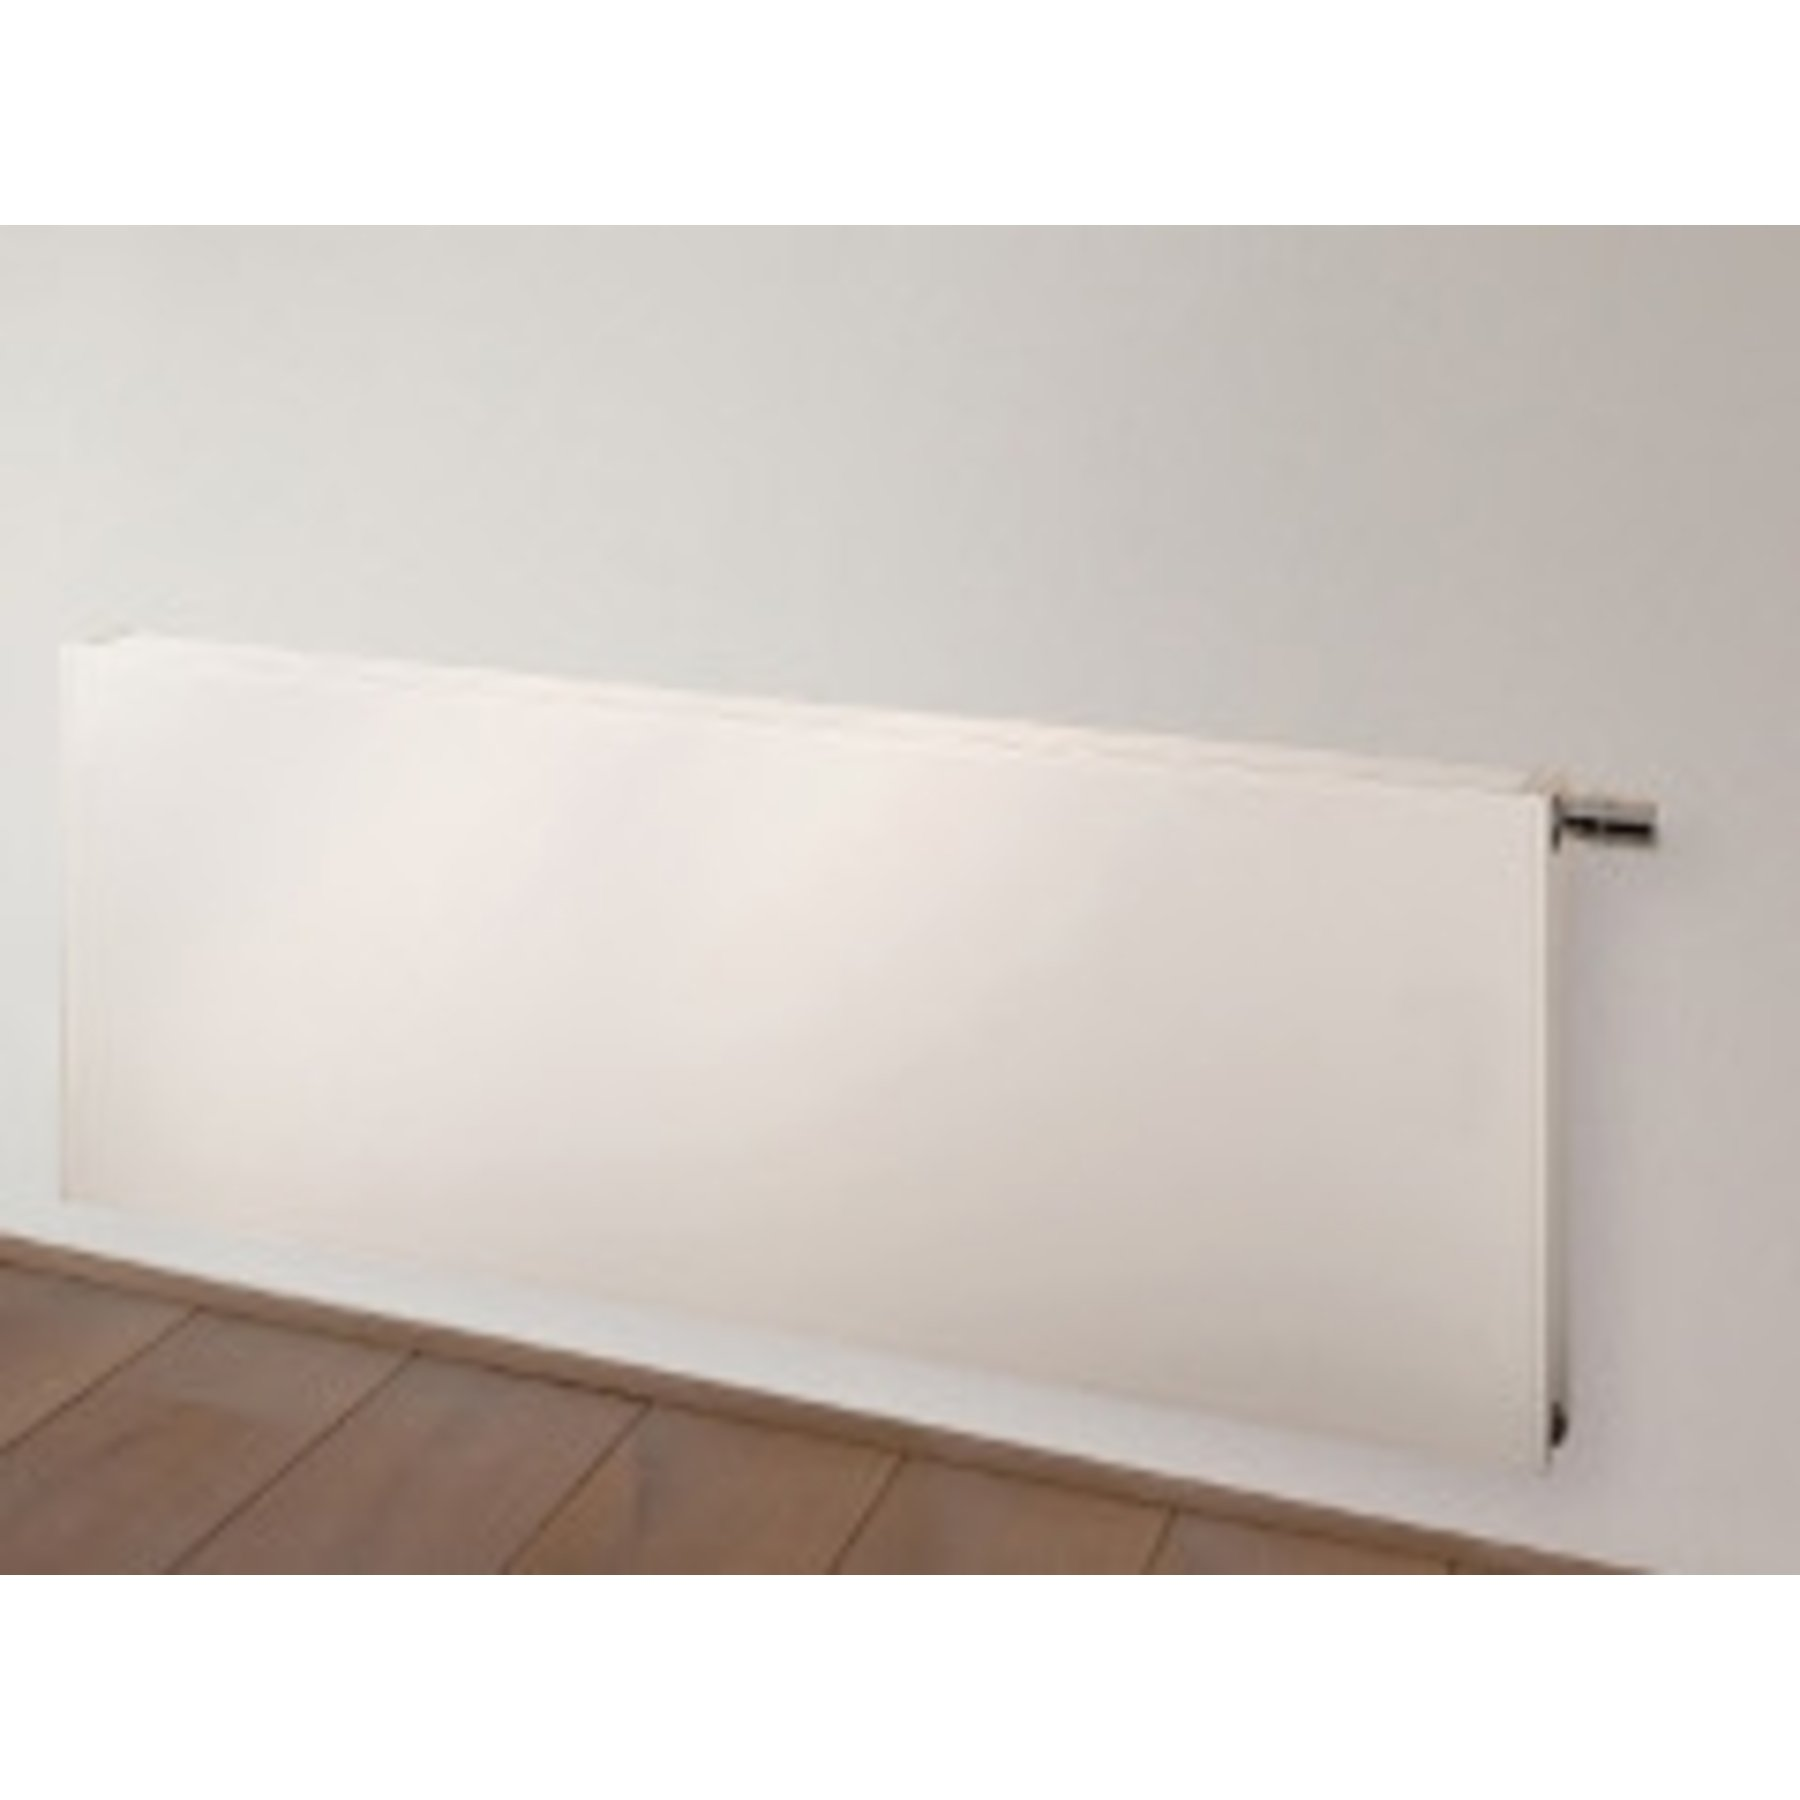 Vasco Flatline Paneelradiator type 21 400x1000mm 914 watt vlak wit structuur (S600)